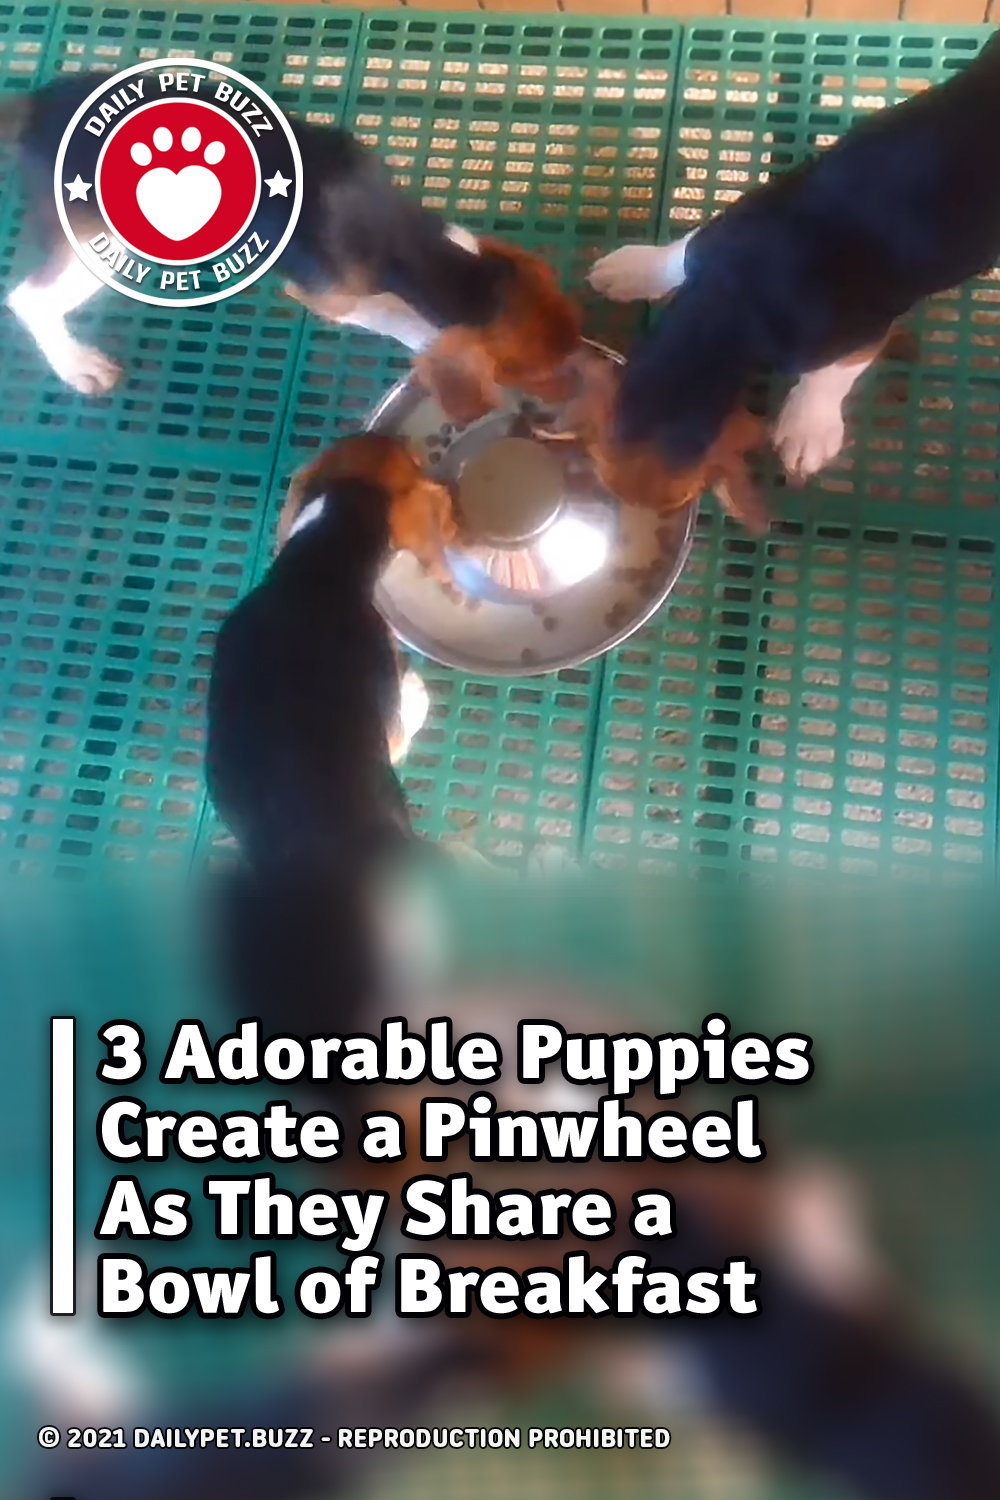 3 Adorable Puppies Create a Pinwheel As They Share a Bowl of Breakfast